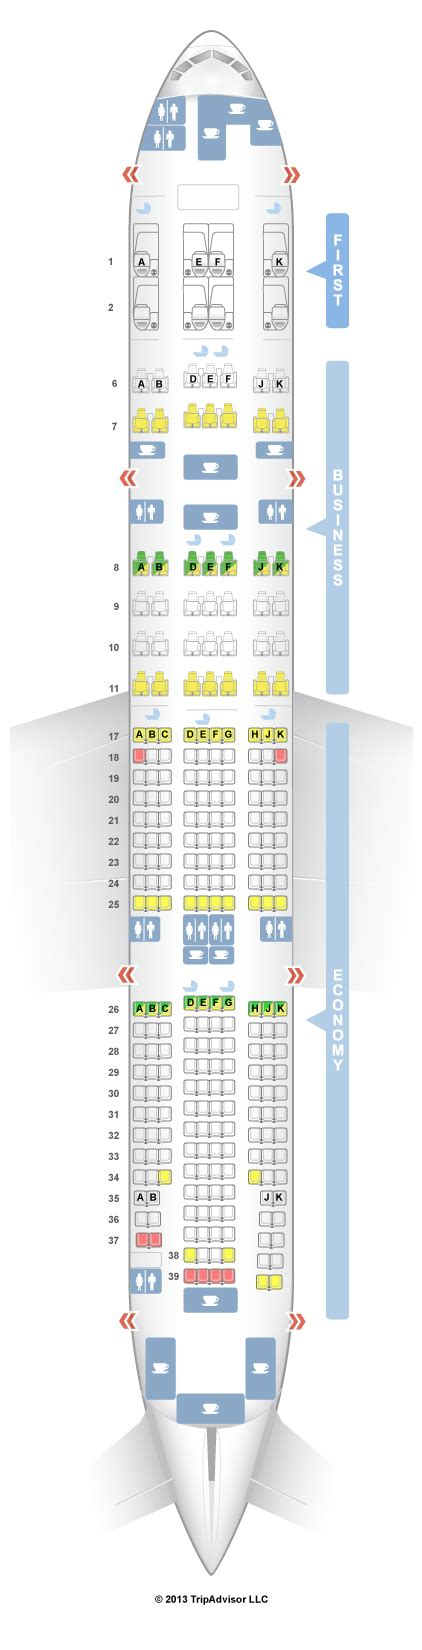 emirates seat map seatguru seat map emirates boeing 777 200lr 772 three class